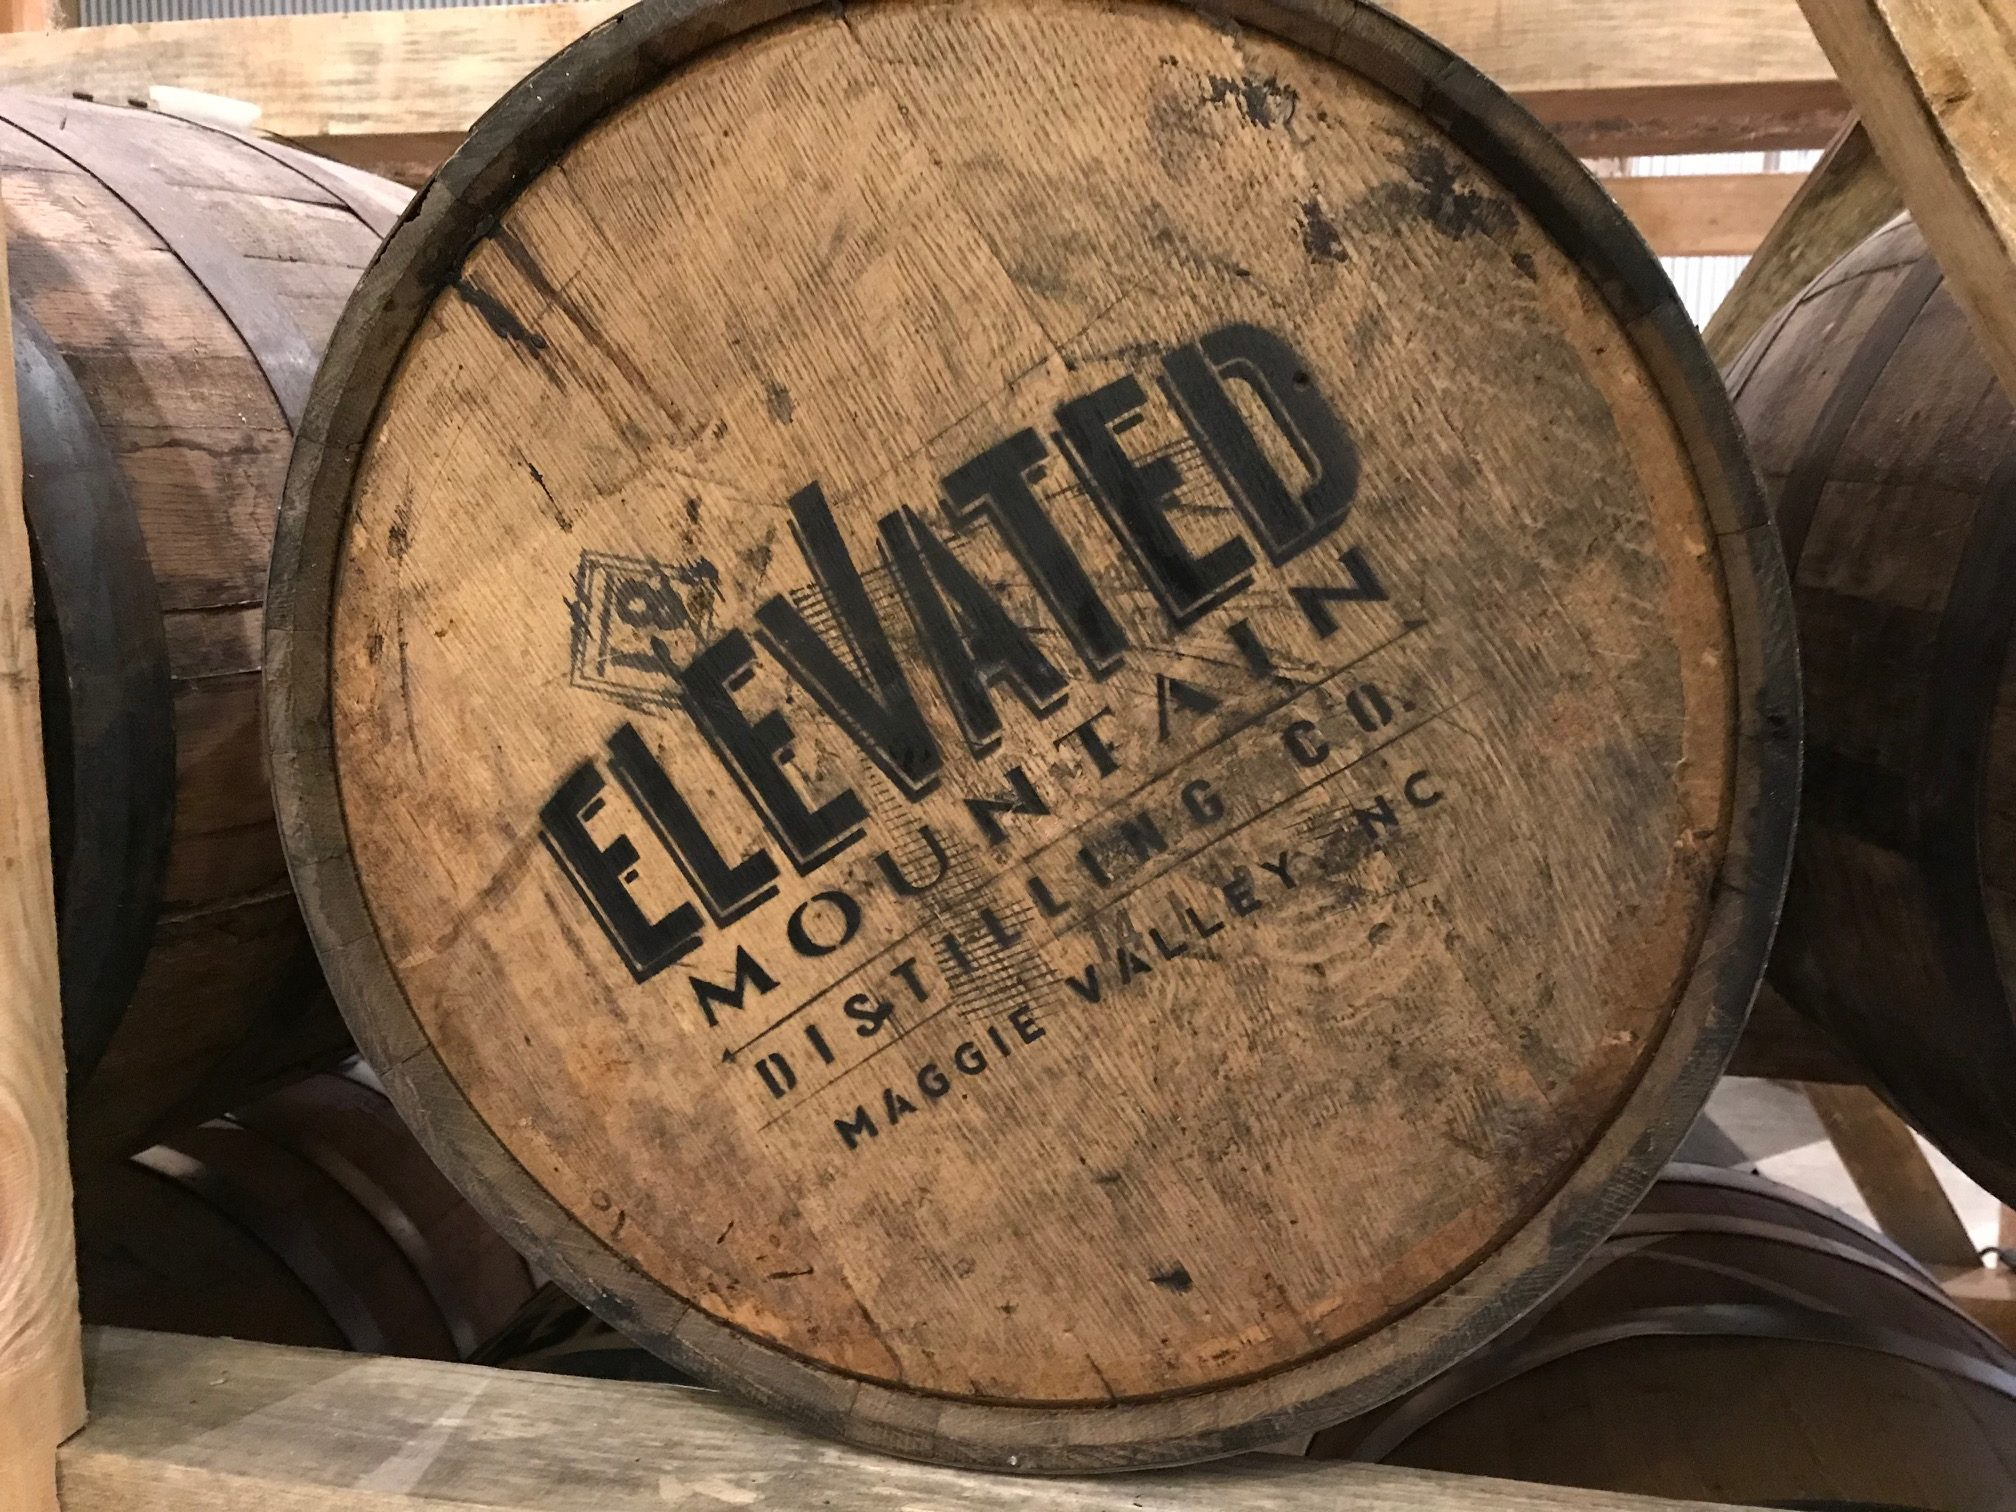 A barrel of Elevated Mountain Distilling moonshine